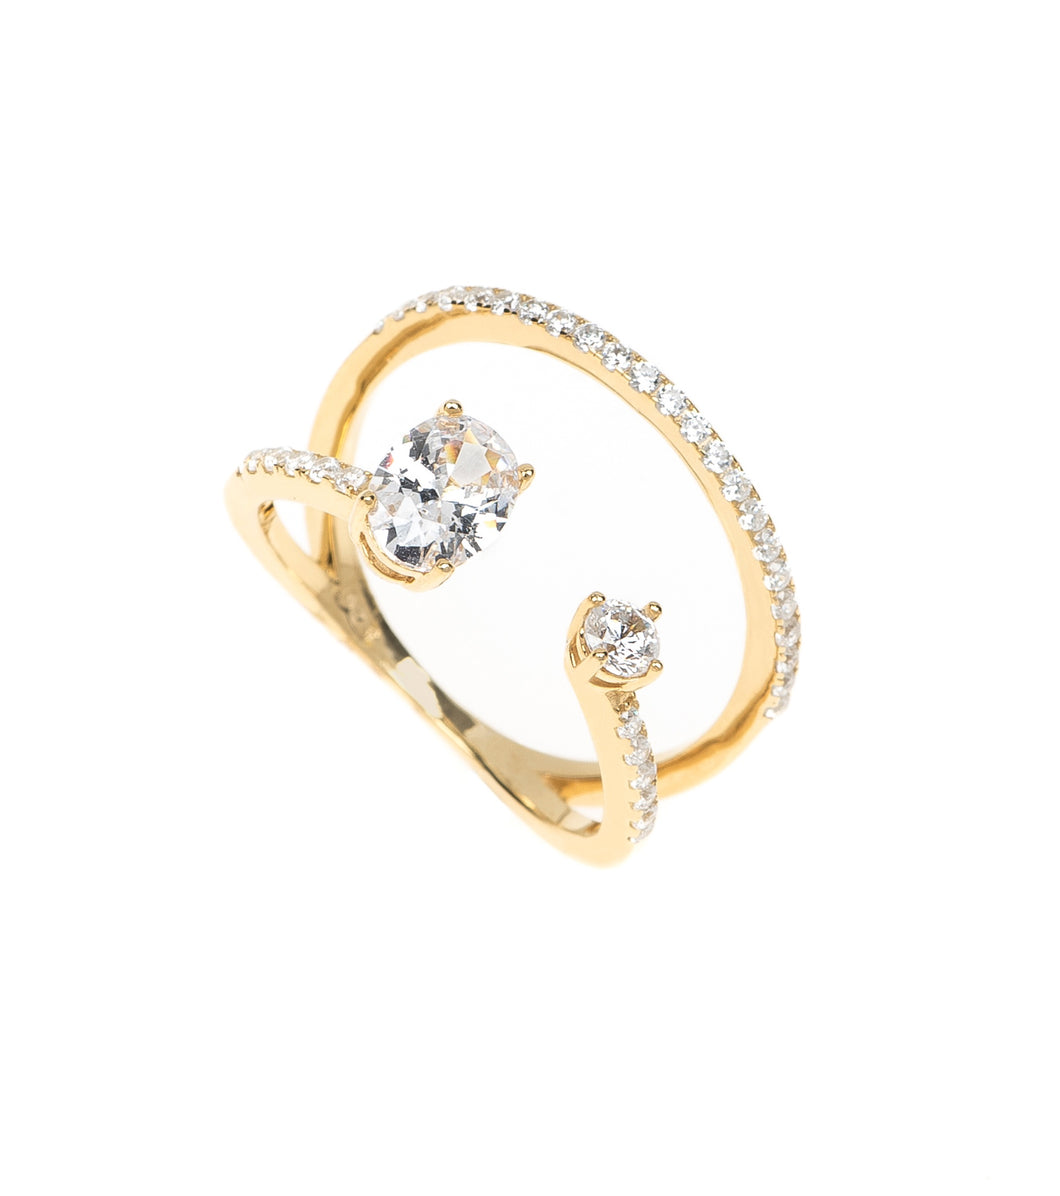 Double Row Ring with Oval CZ